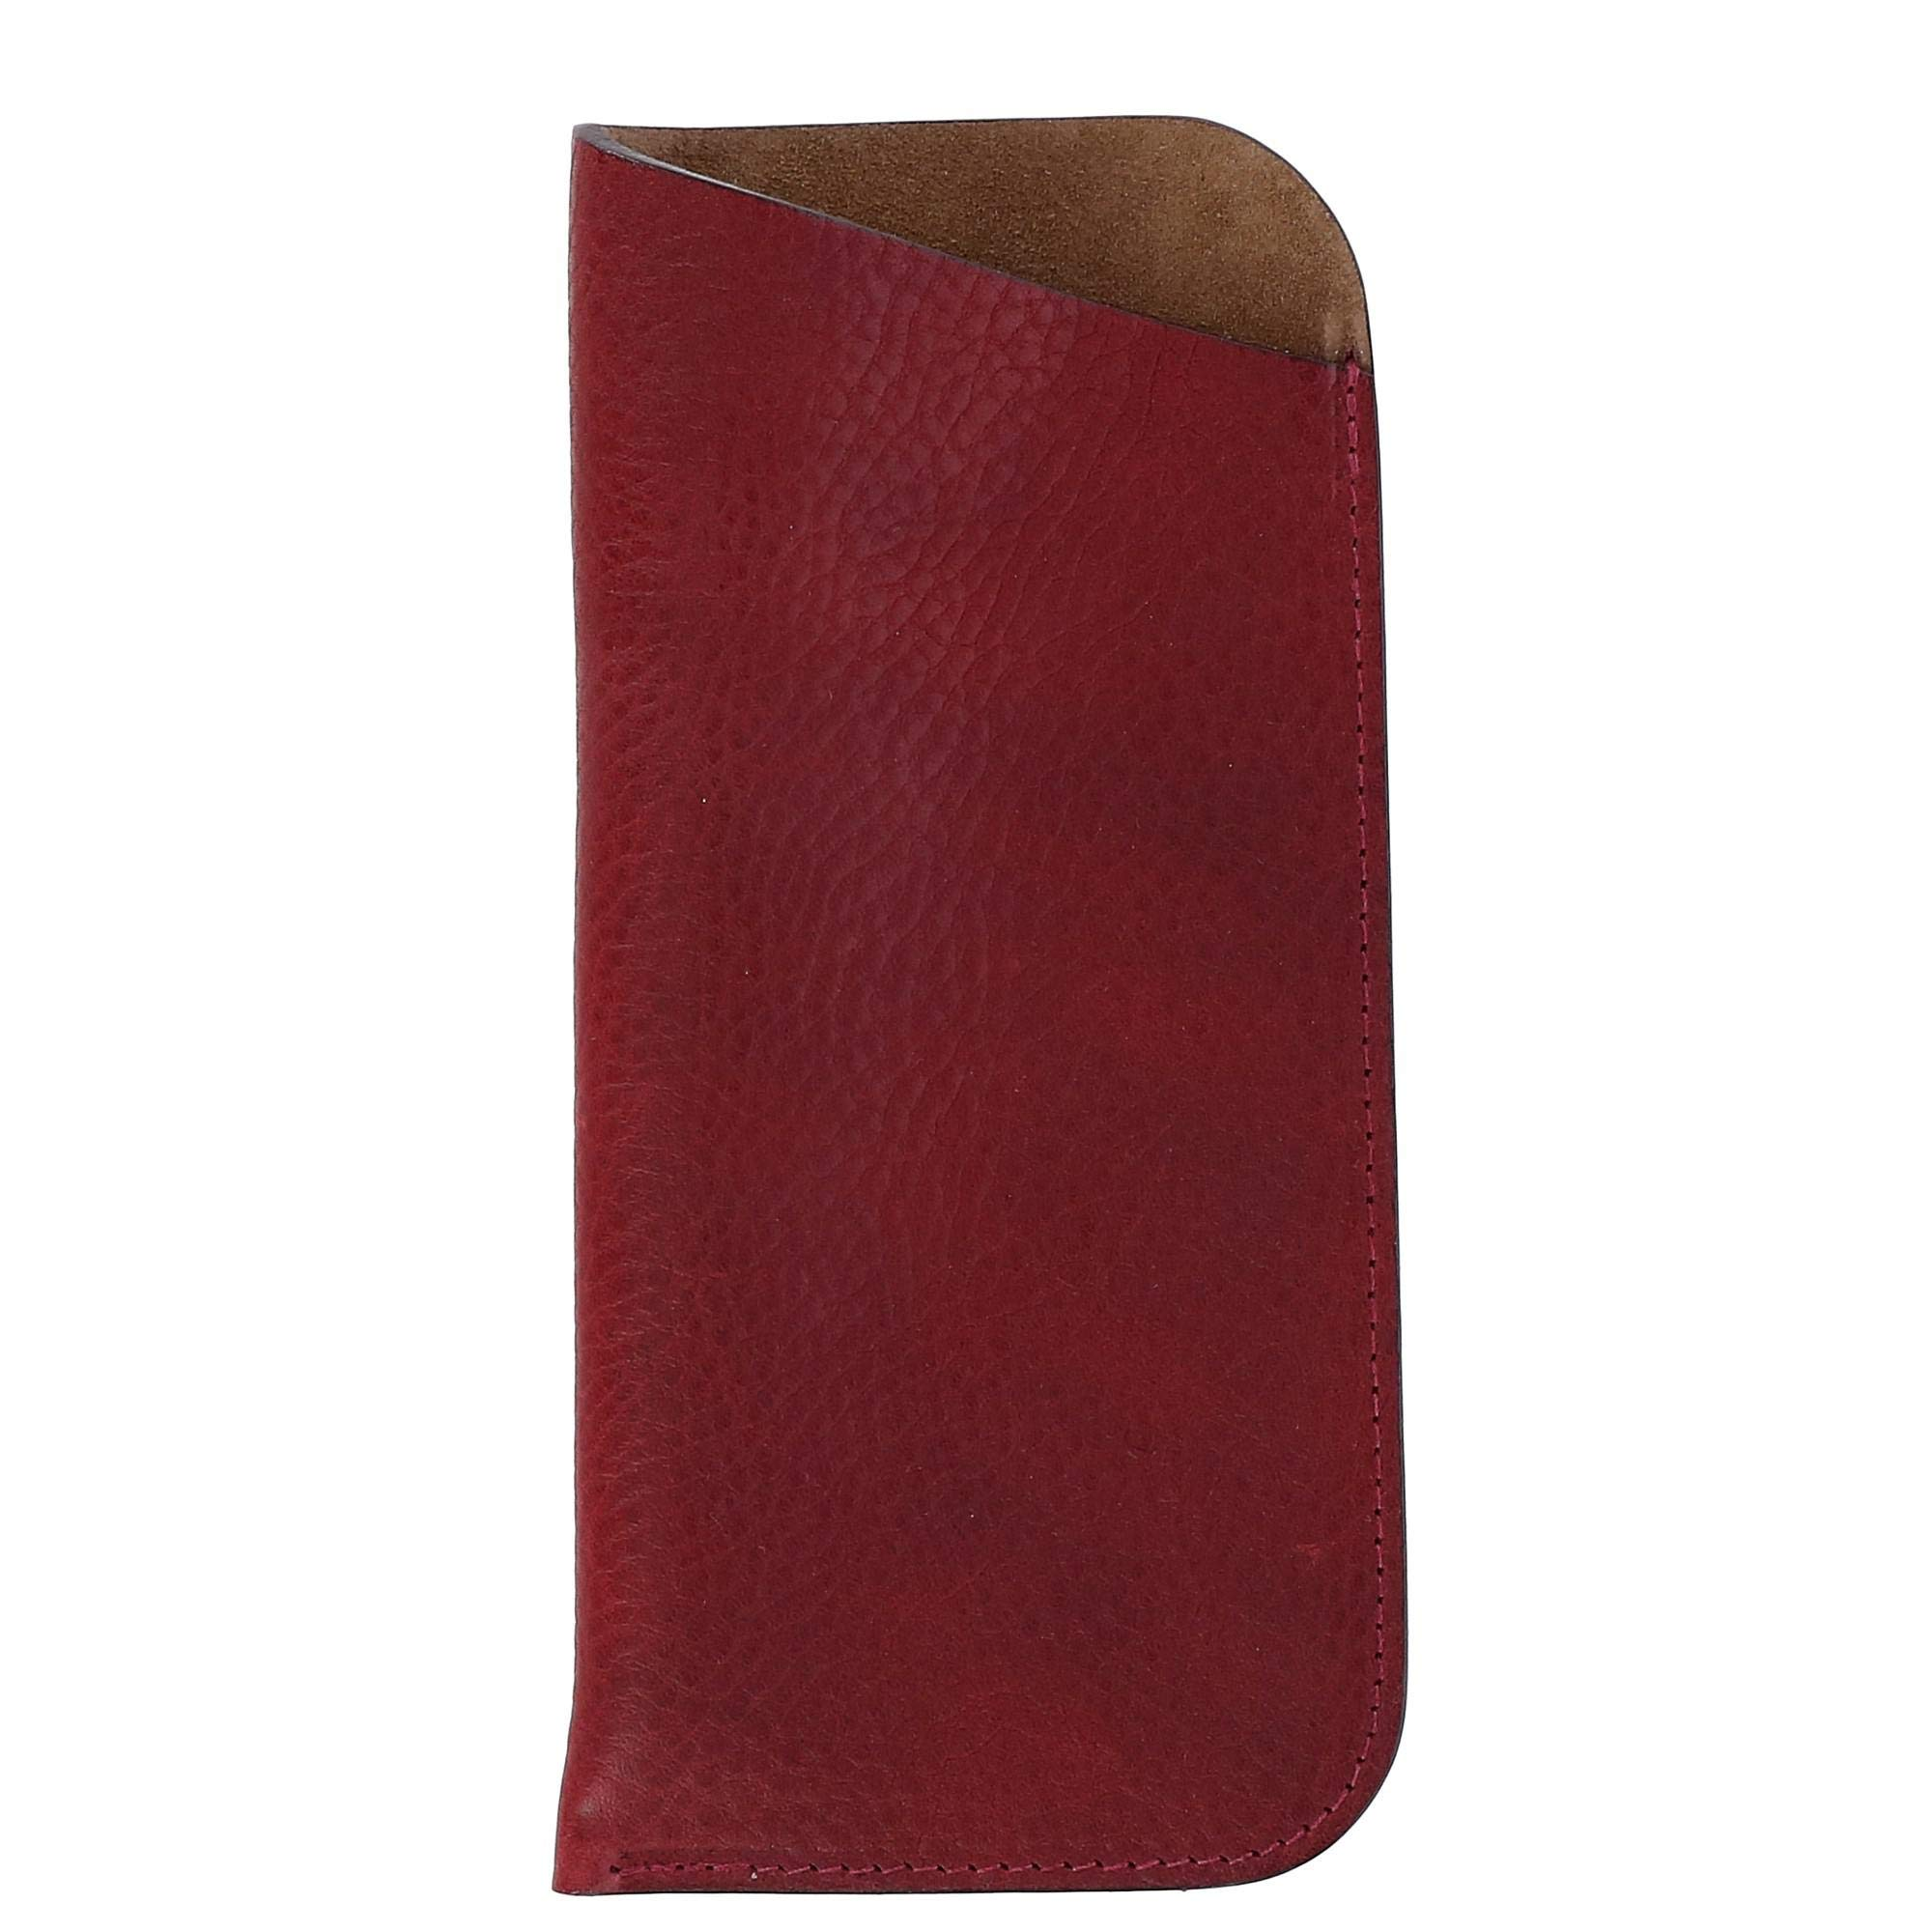 The British Belt Company Italian Leather Slip Glasses Case with Suede Lining by The British Belt Co.